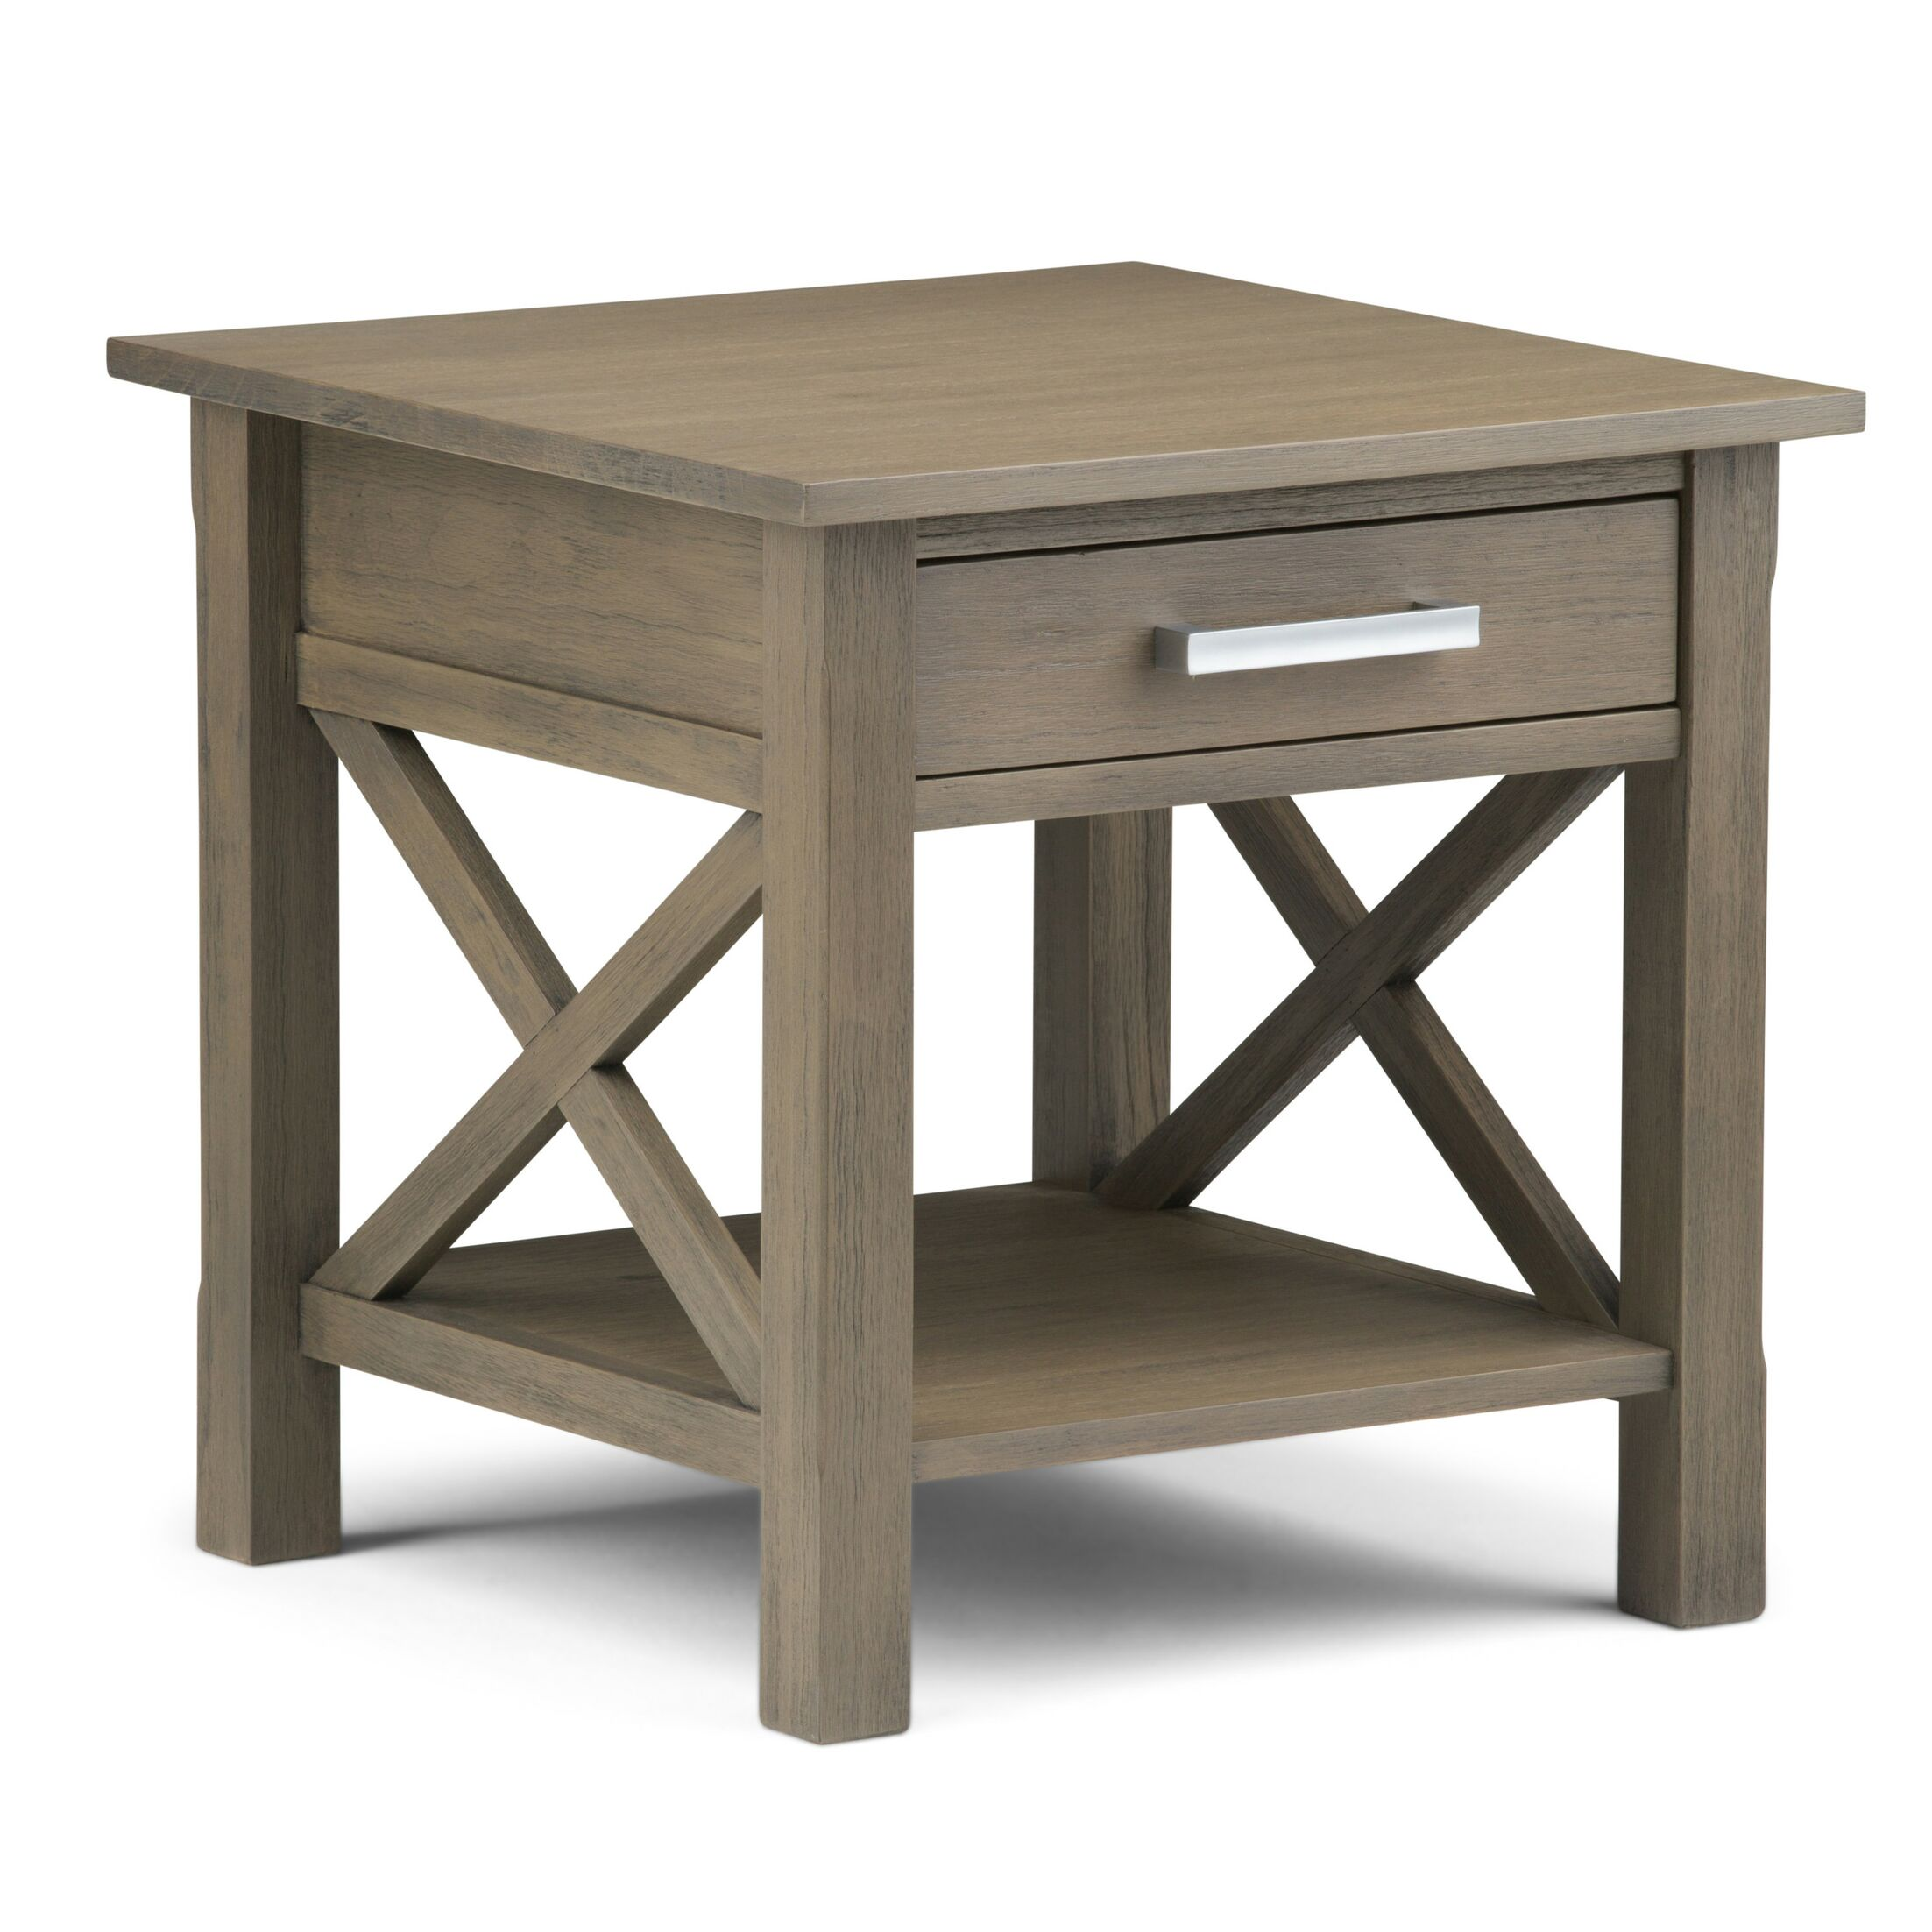 Kitchener End Table With Storage� Color: Farmhouse Gray